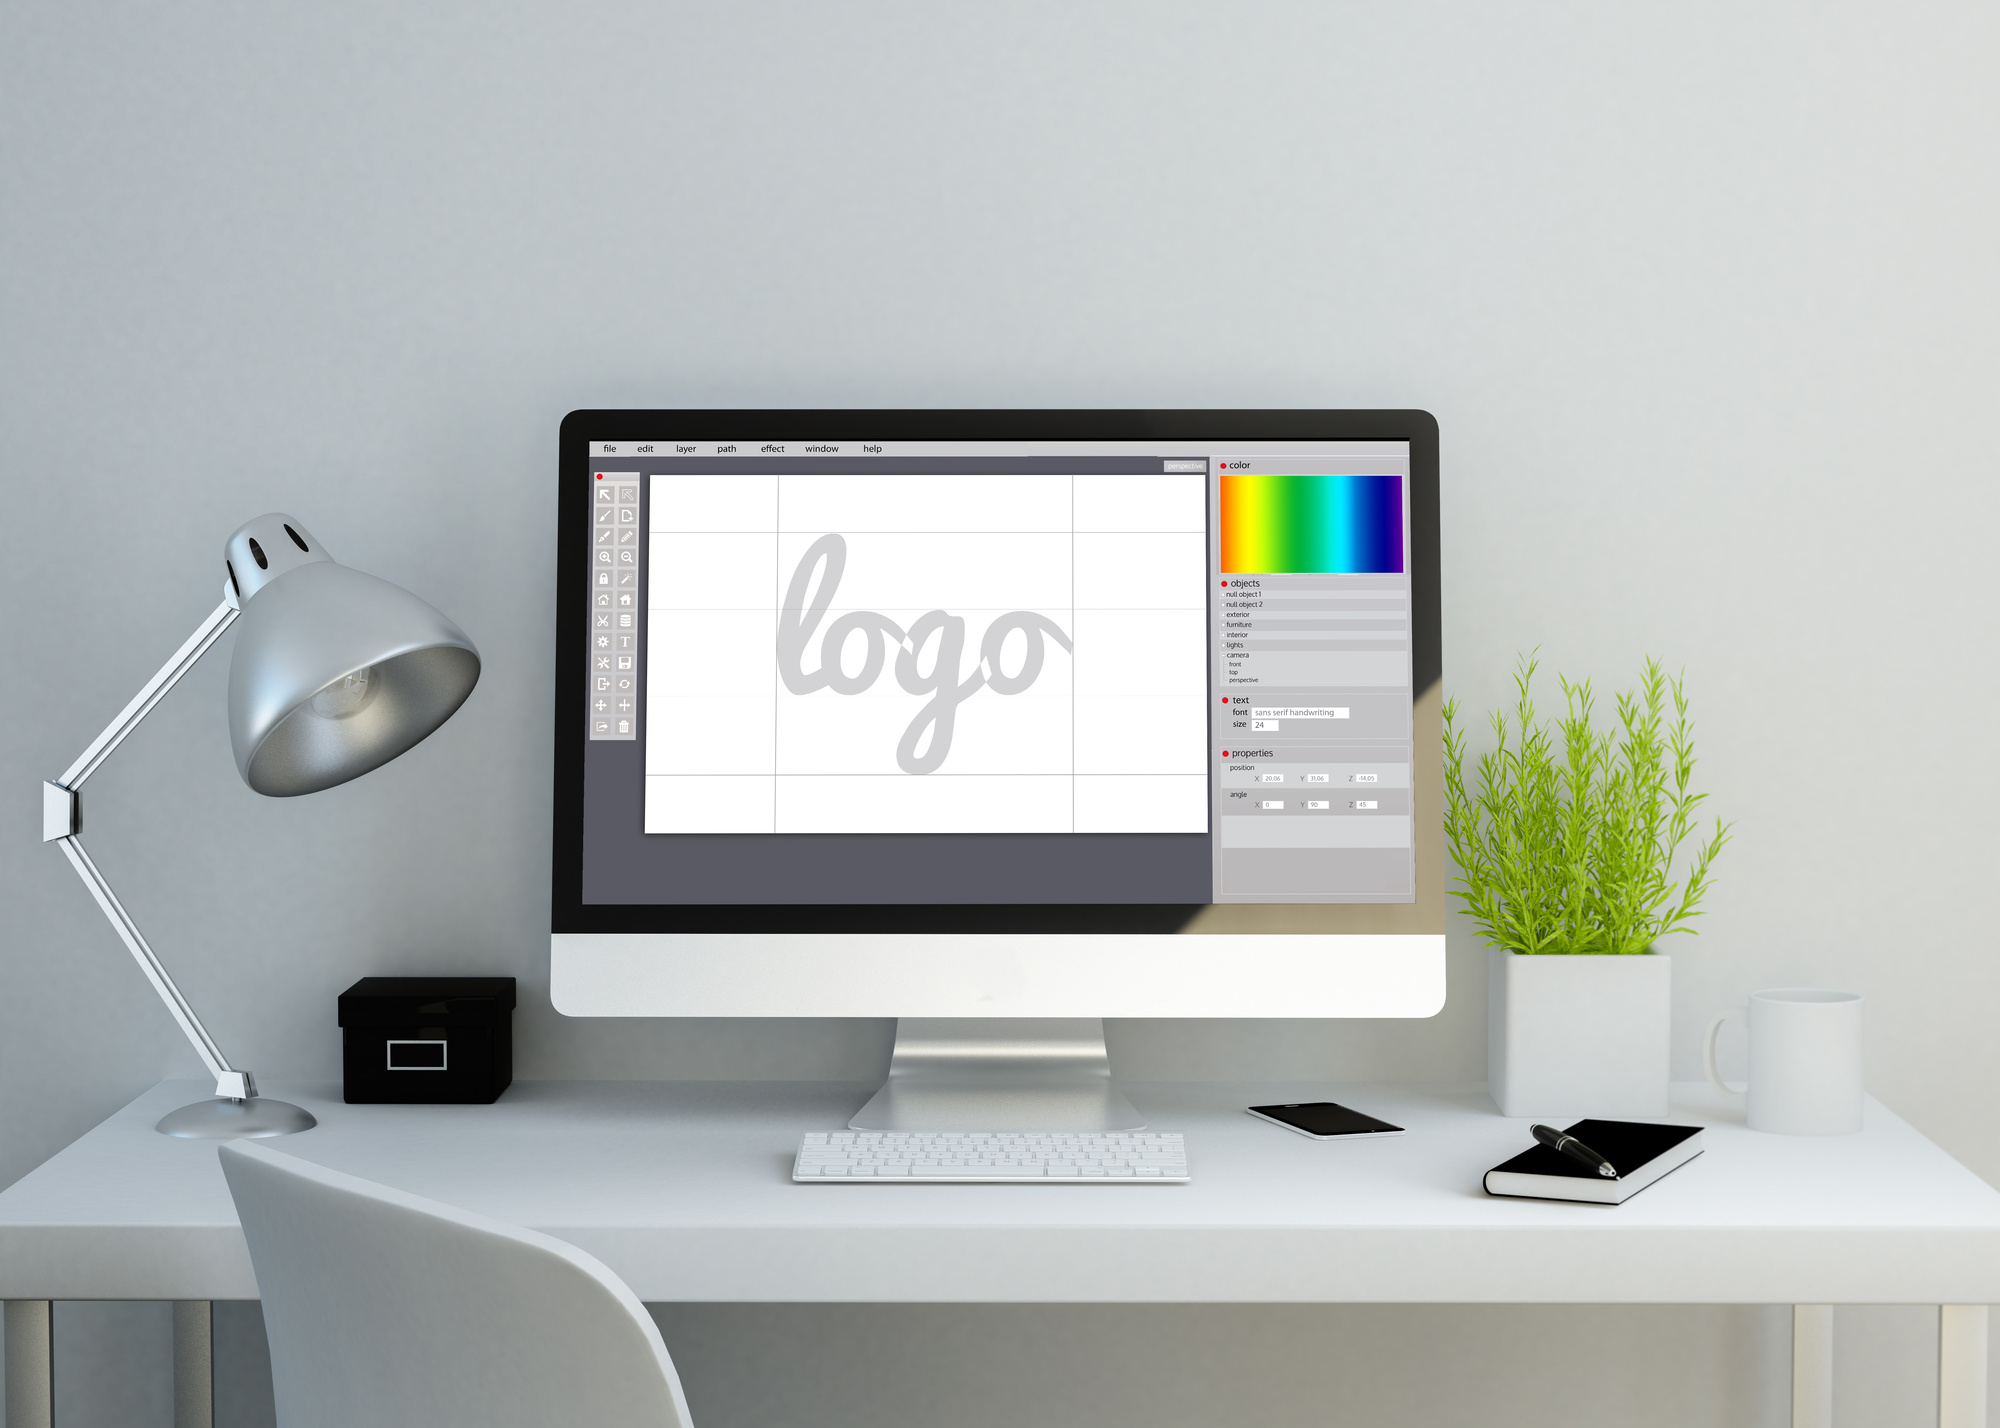 how to make a business logo